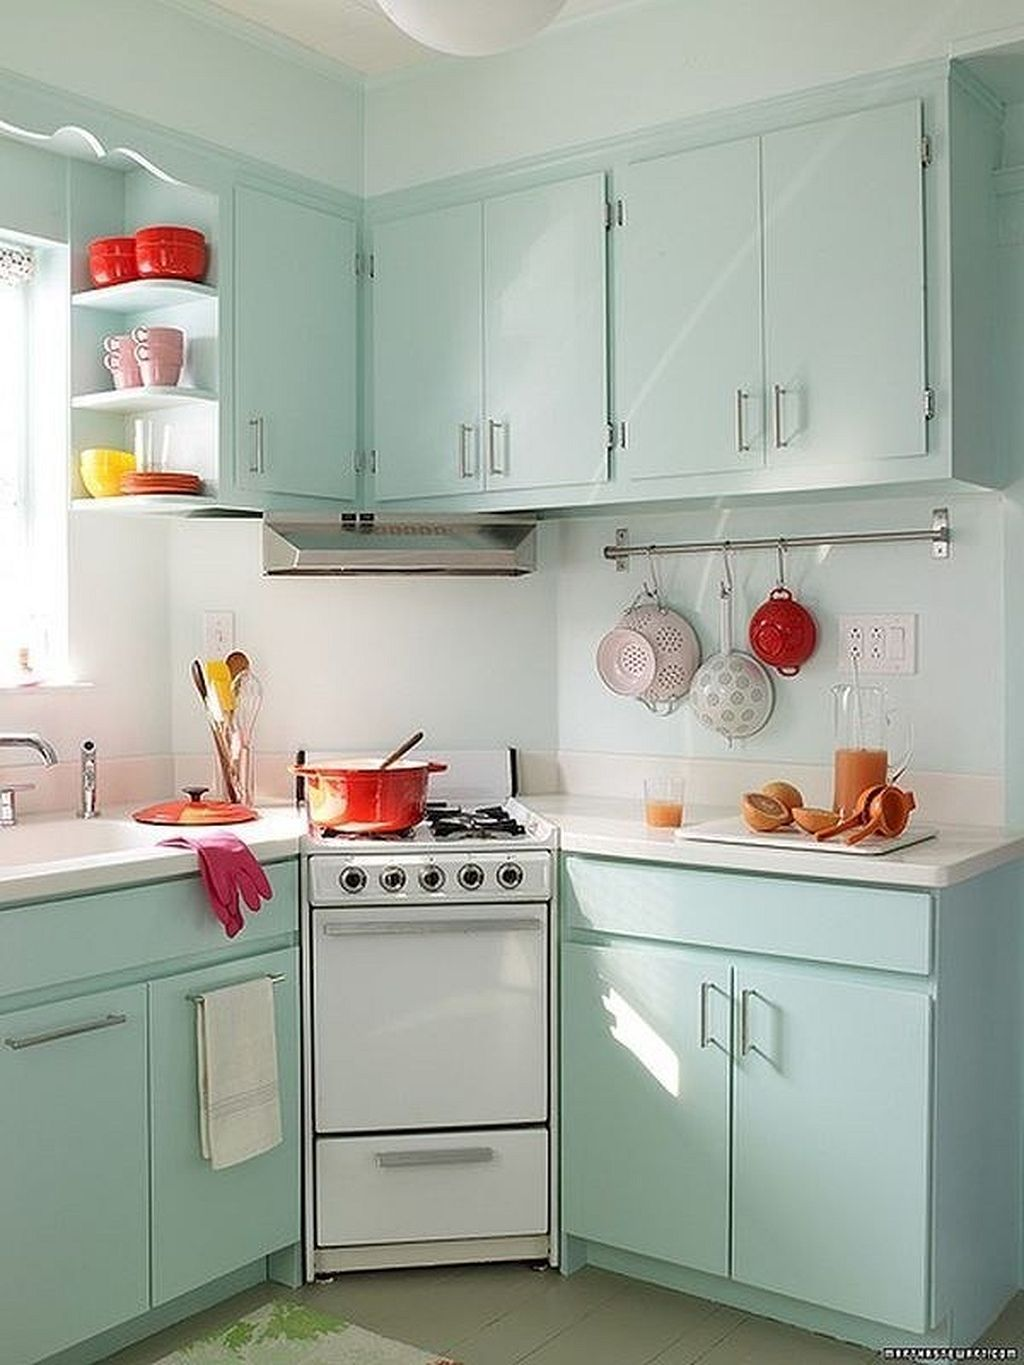 5 pinterest tricks that make decorating any small space easy home kitchens interior design on kitchen ideas simple id=95639